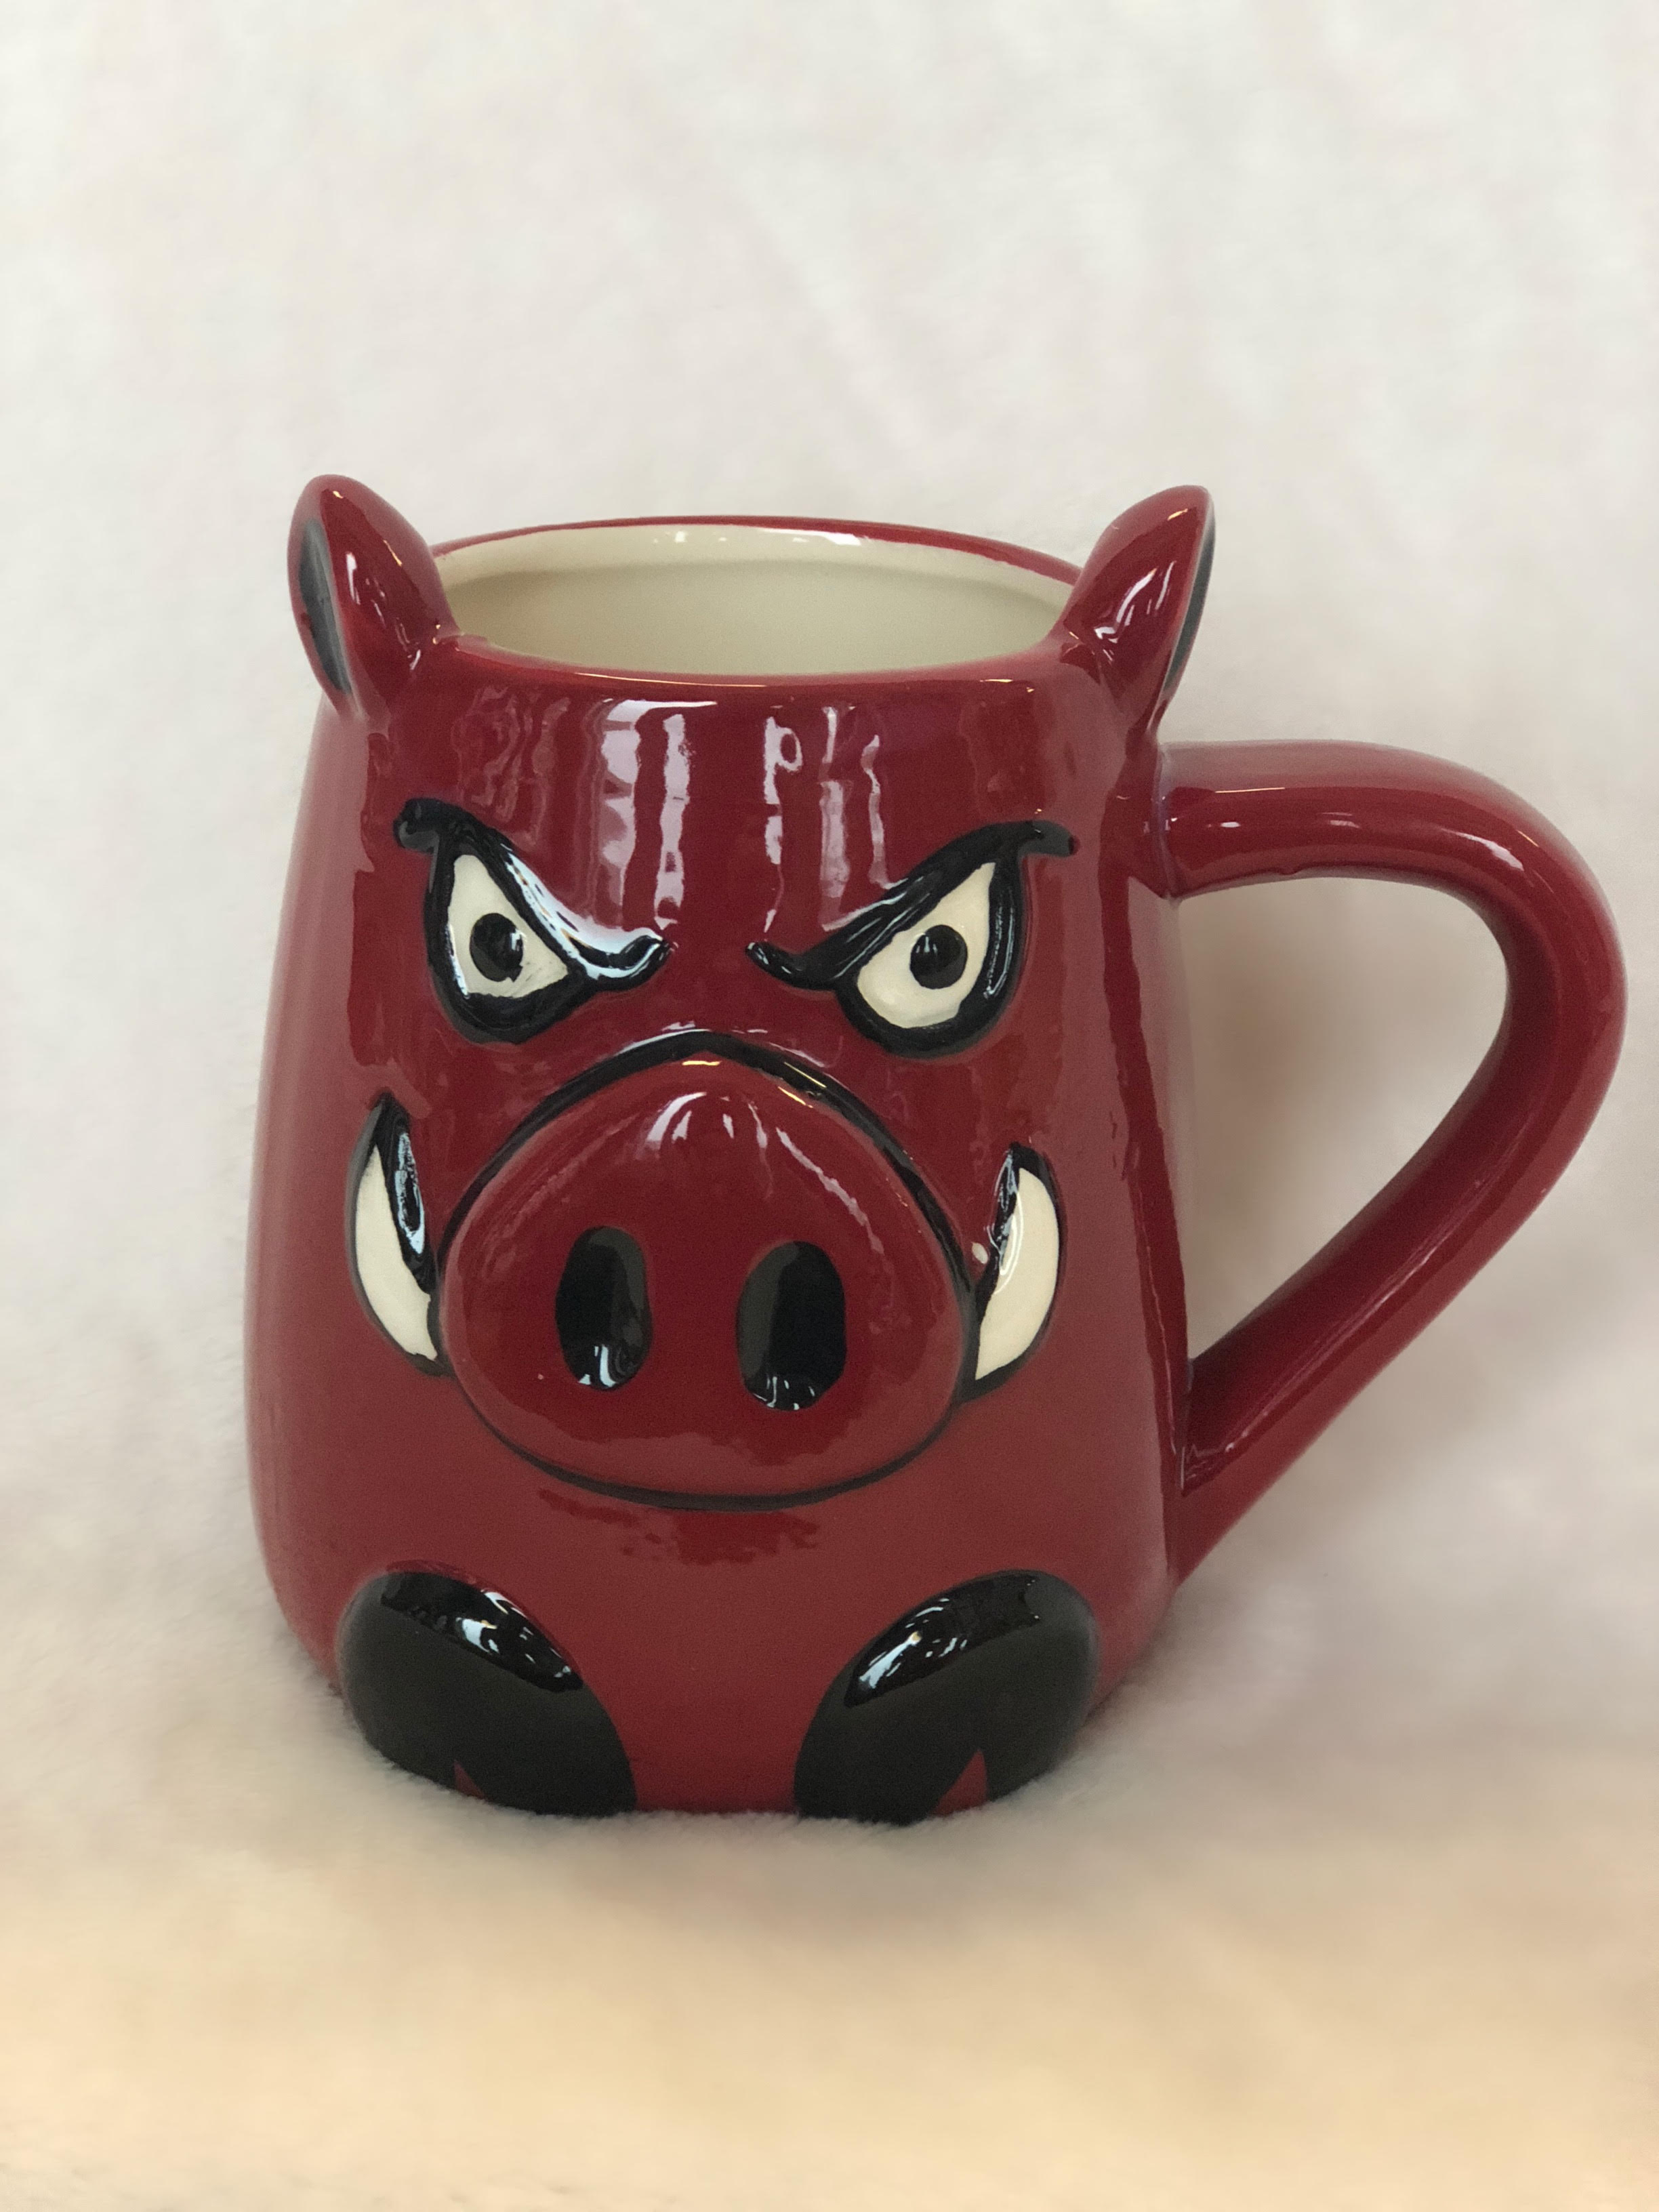 U-AR MUG CERAMIC MOLDED HOG